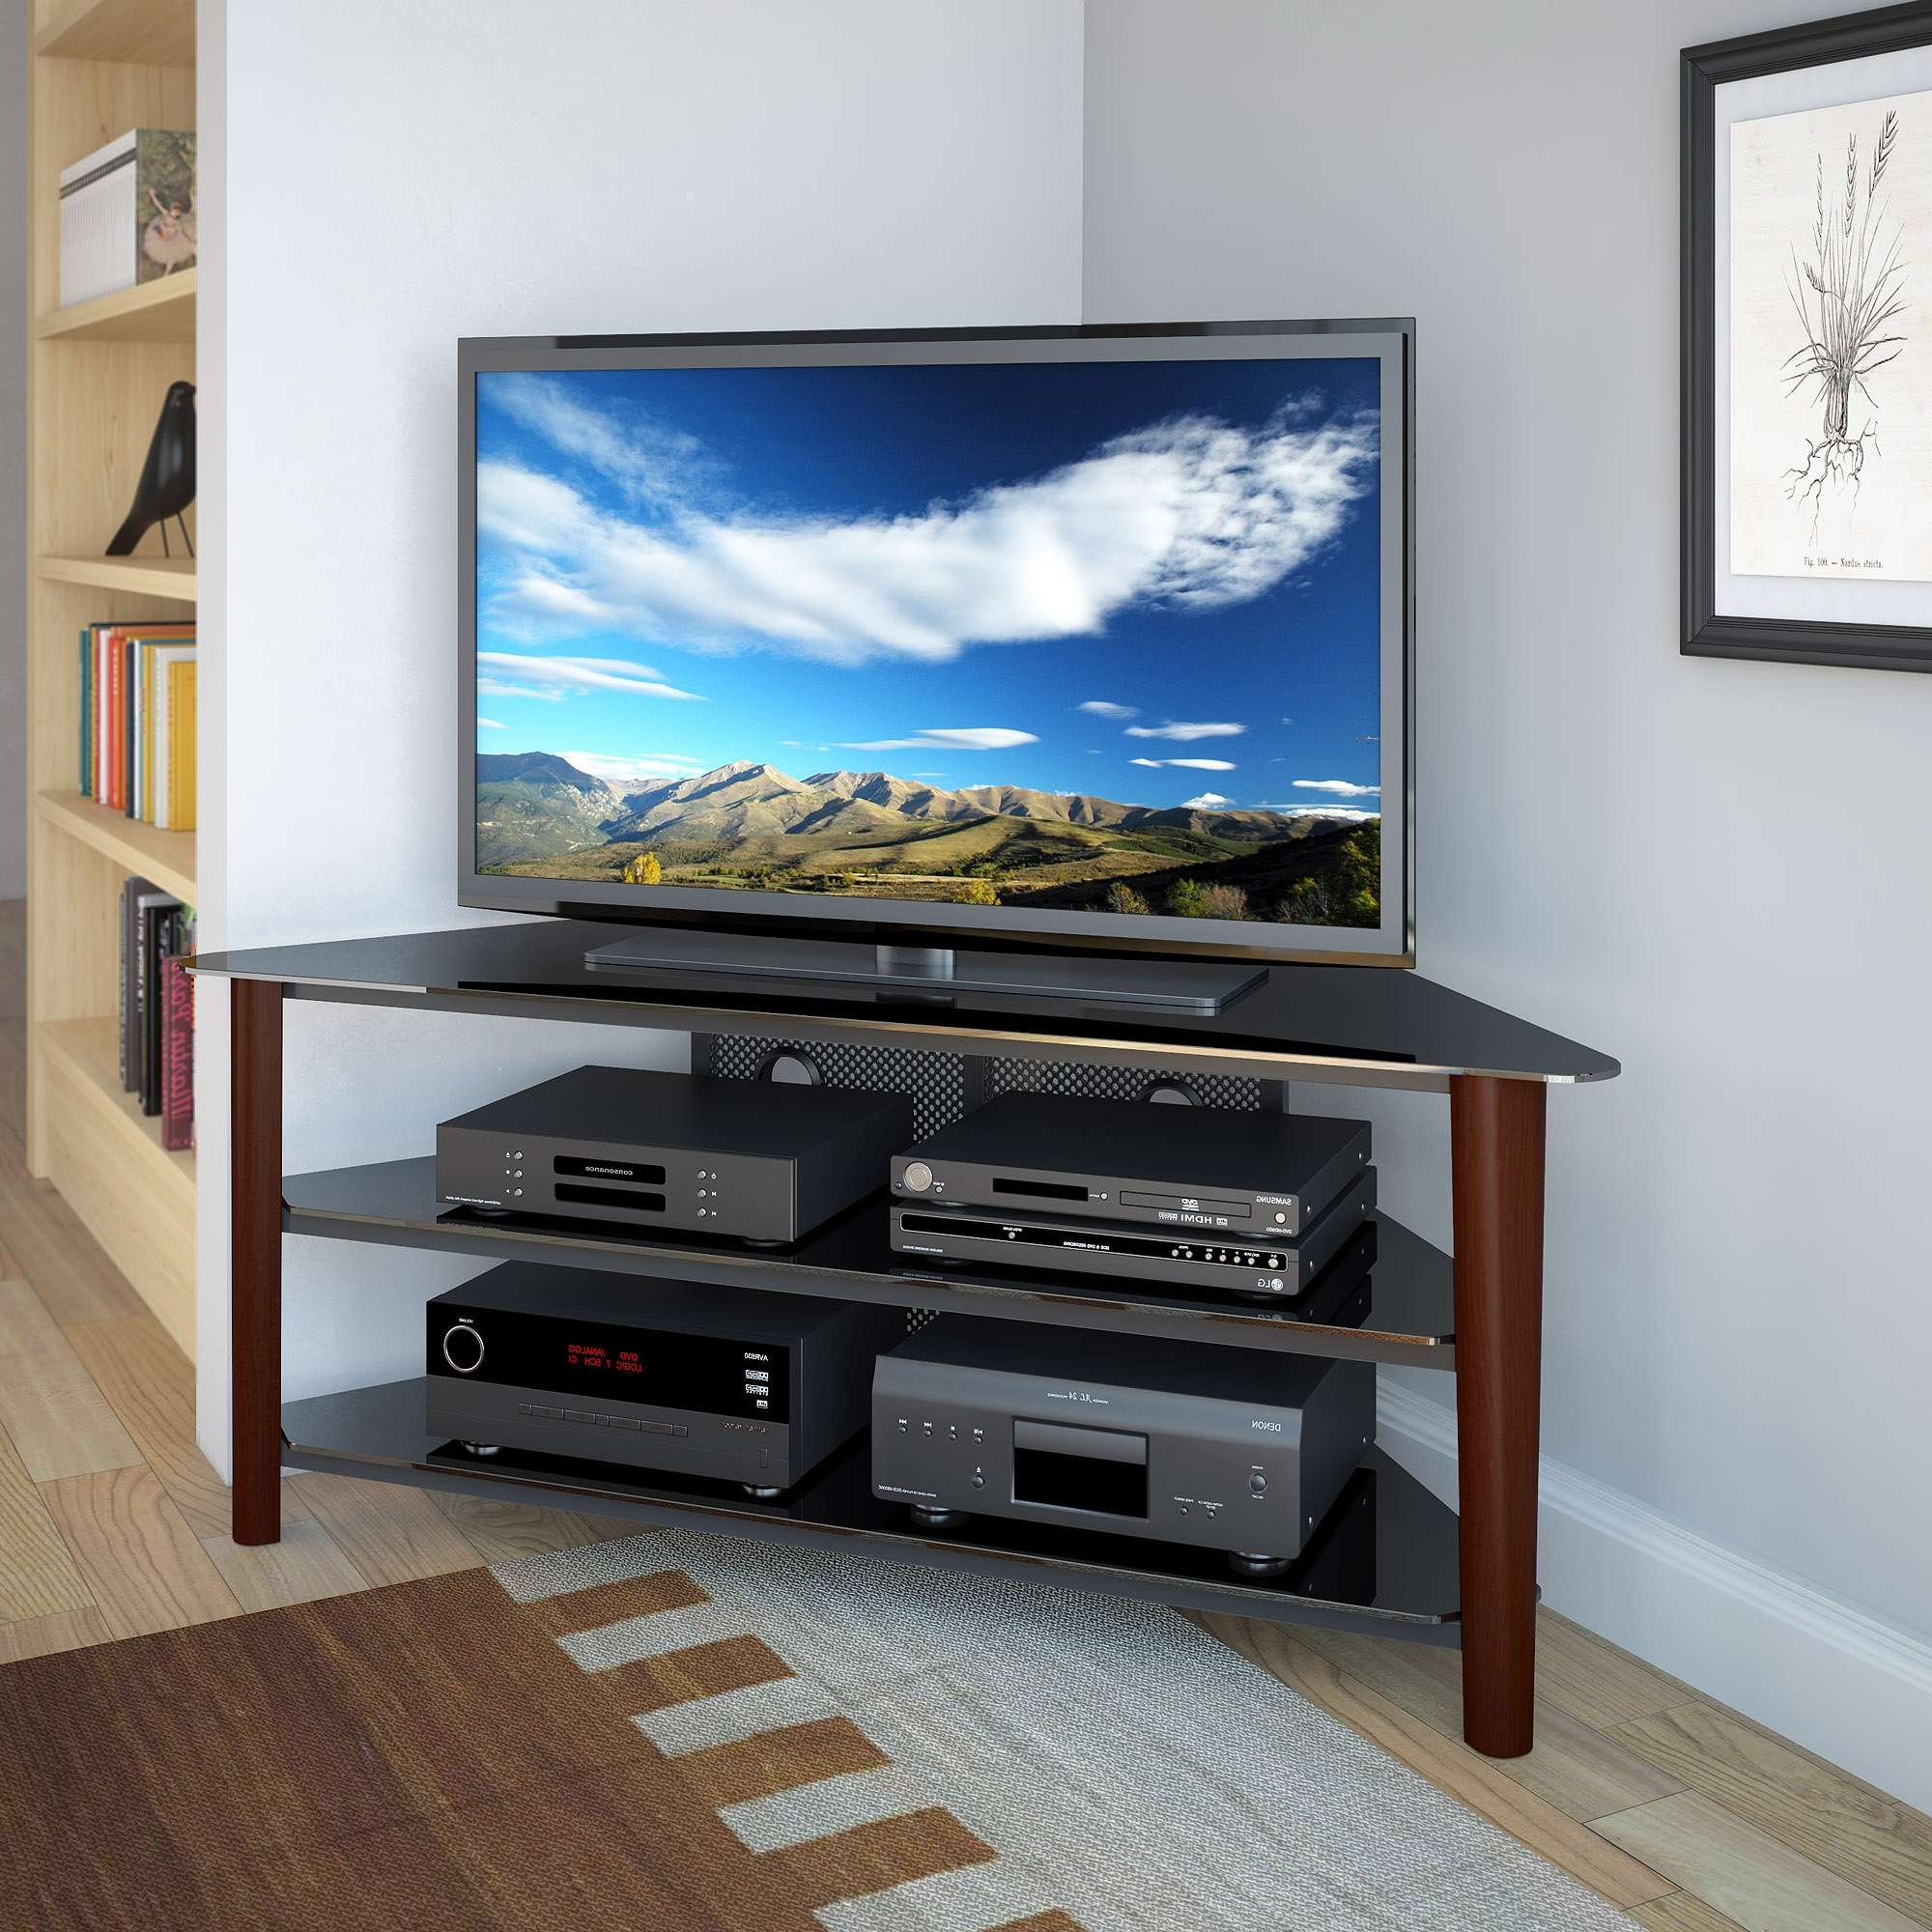 Corner Tv Stand For 55 Inch Flat Screen For Corner Tv Stands For 55 Inch Tv (View 2 of 15)